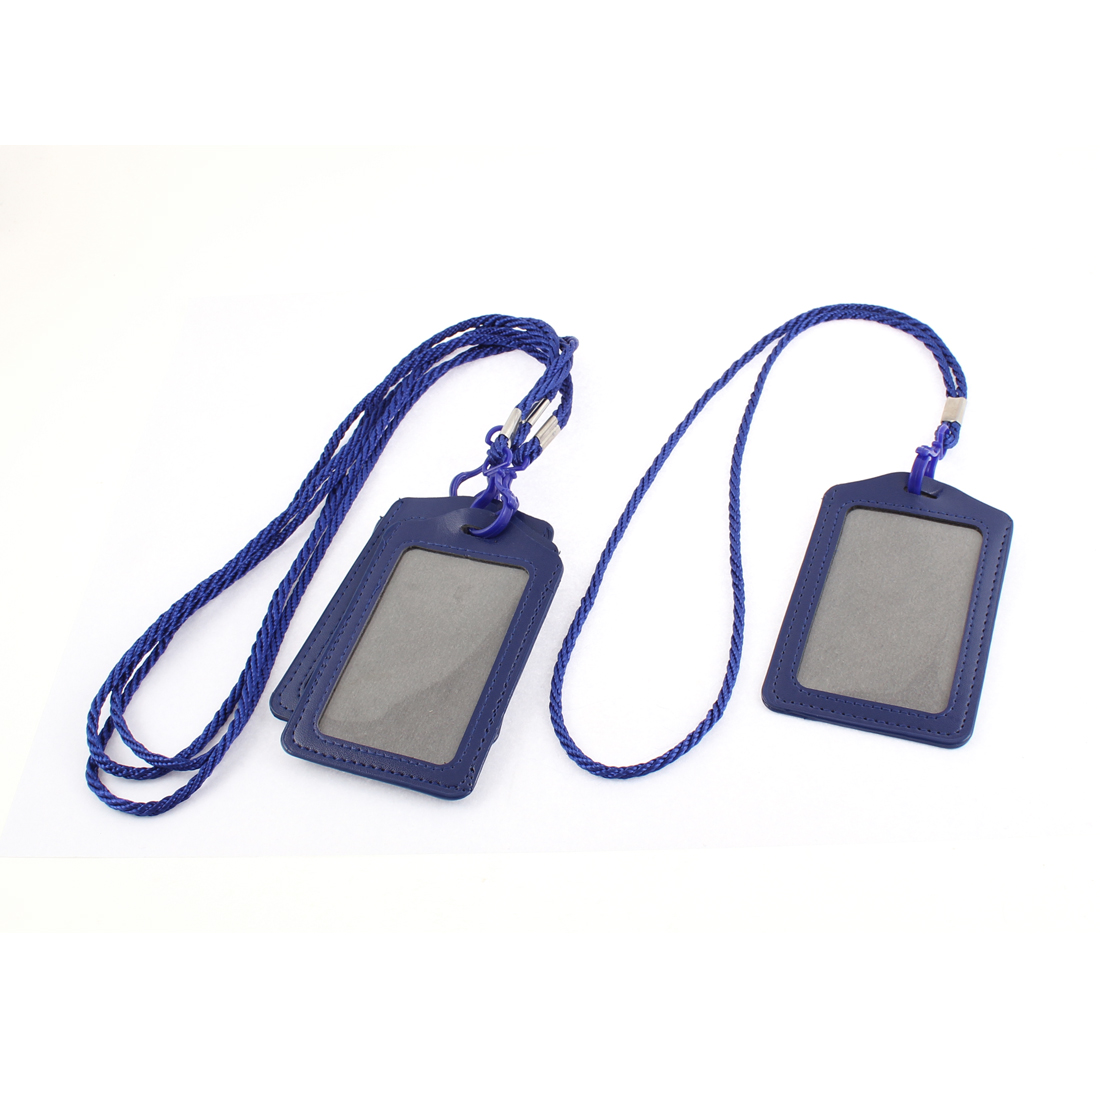 Office School Faux Leather Vertical Lanyard Name ID Card Tag Badge Holder 4pcs